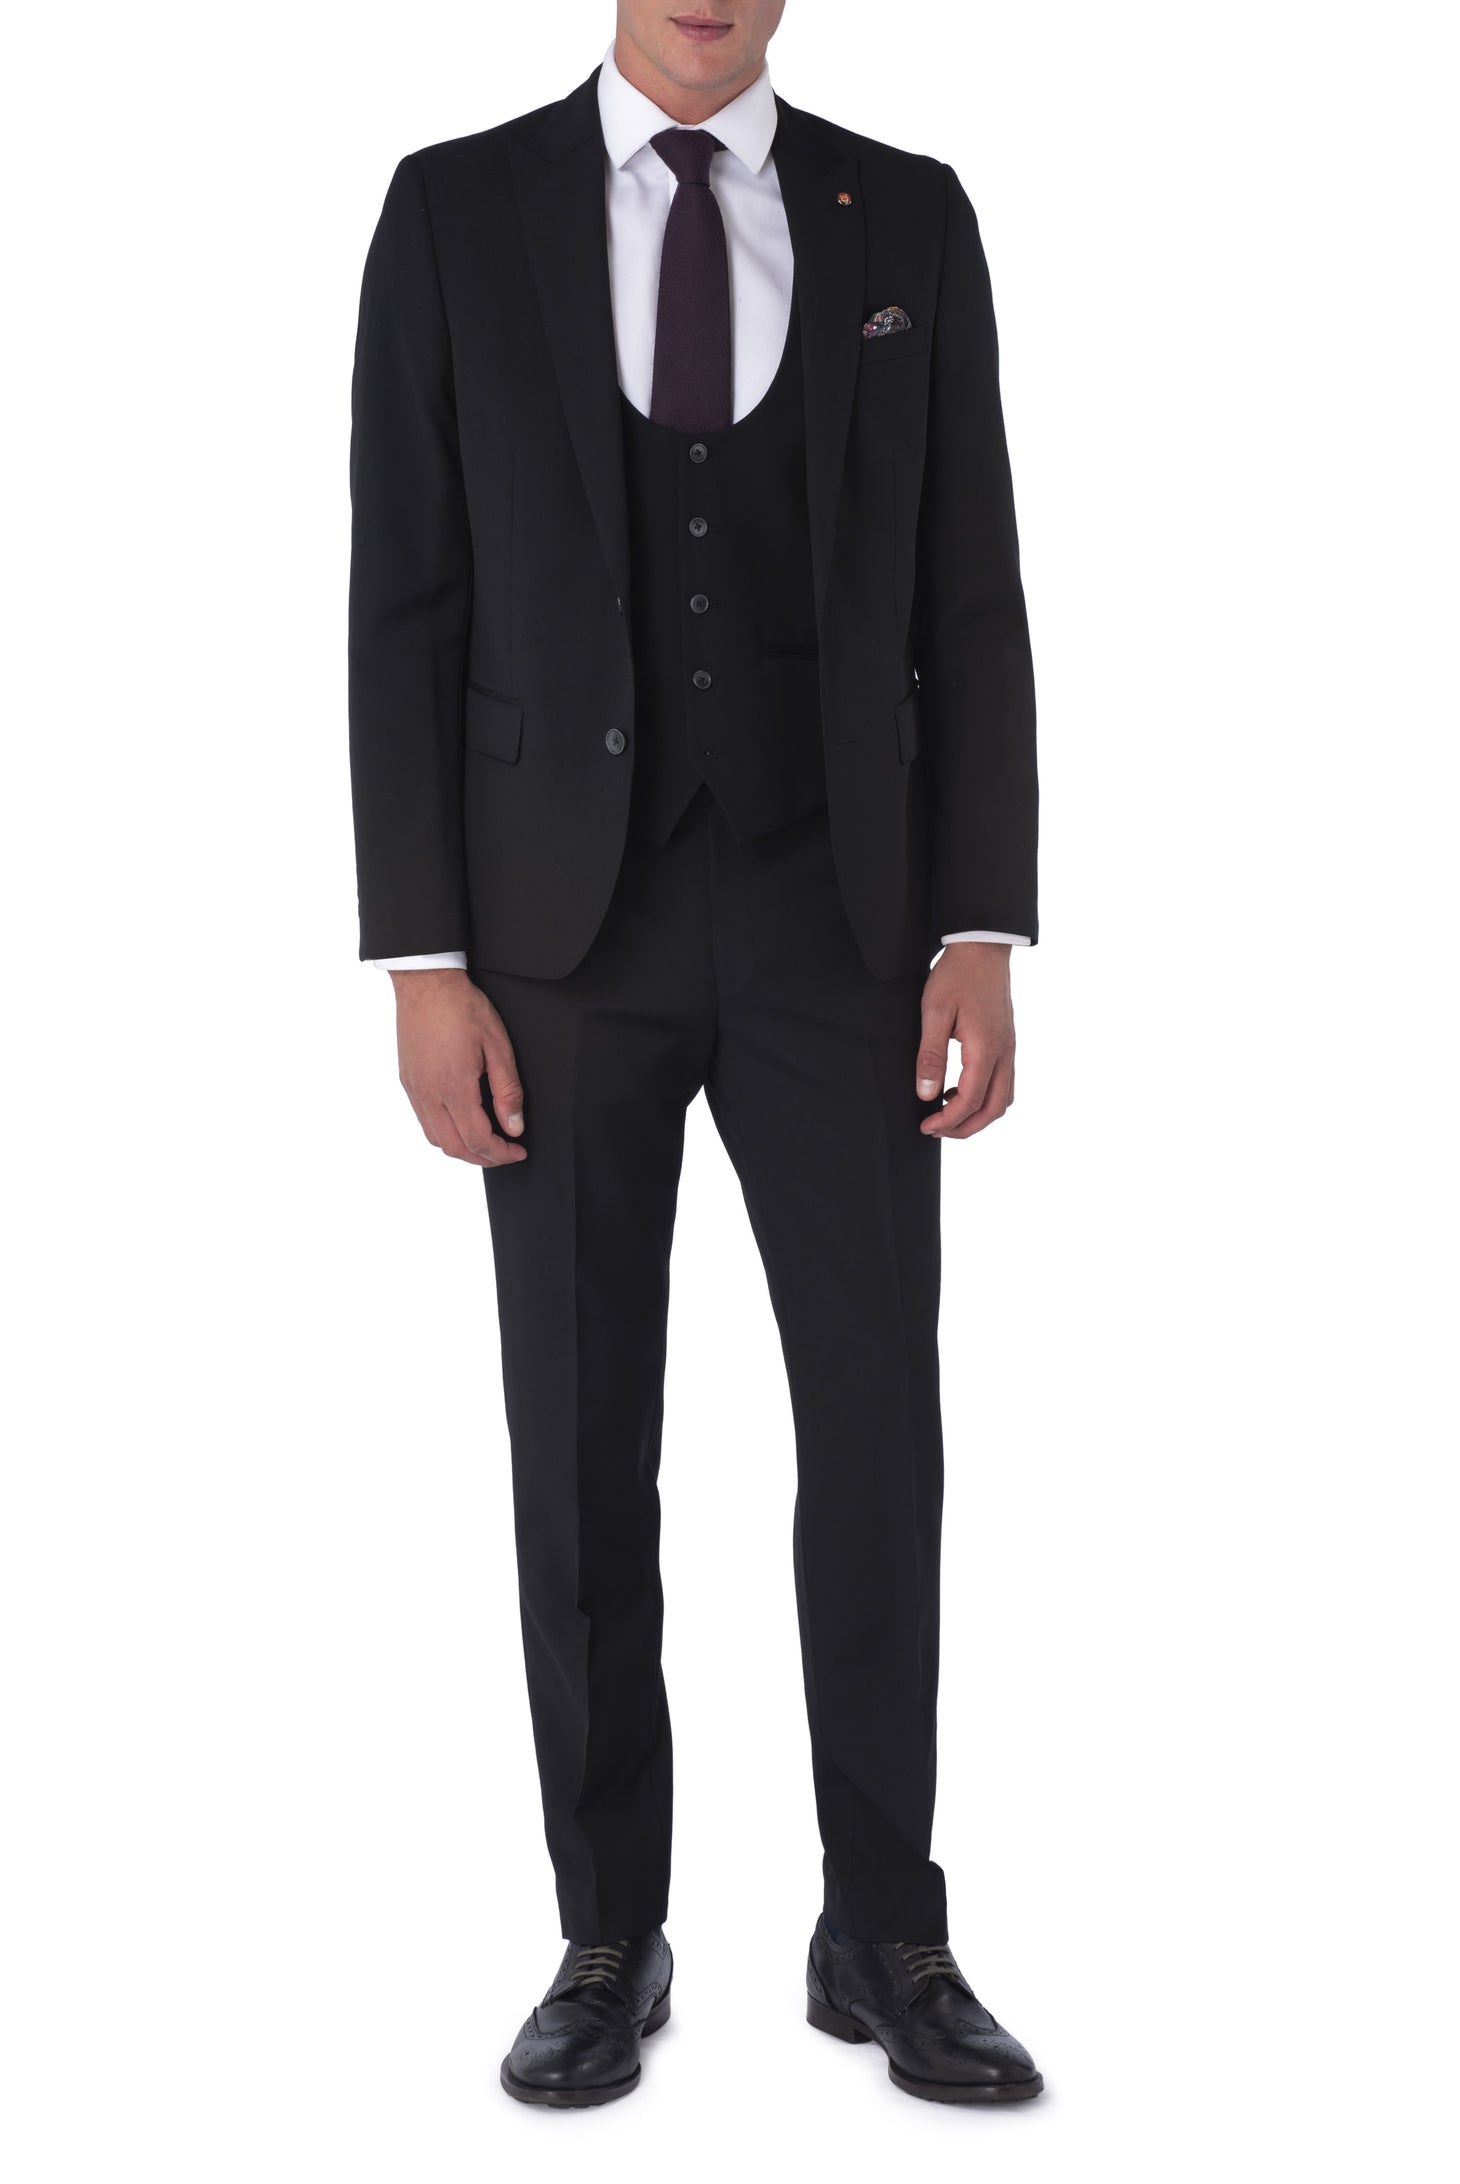 LIAM Black Three Piece Slim Fit Suit